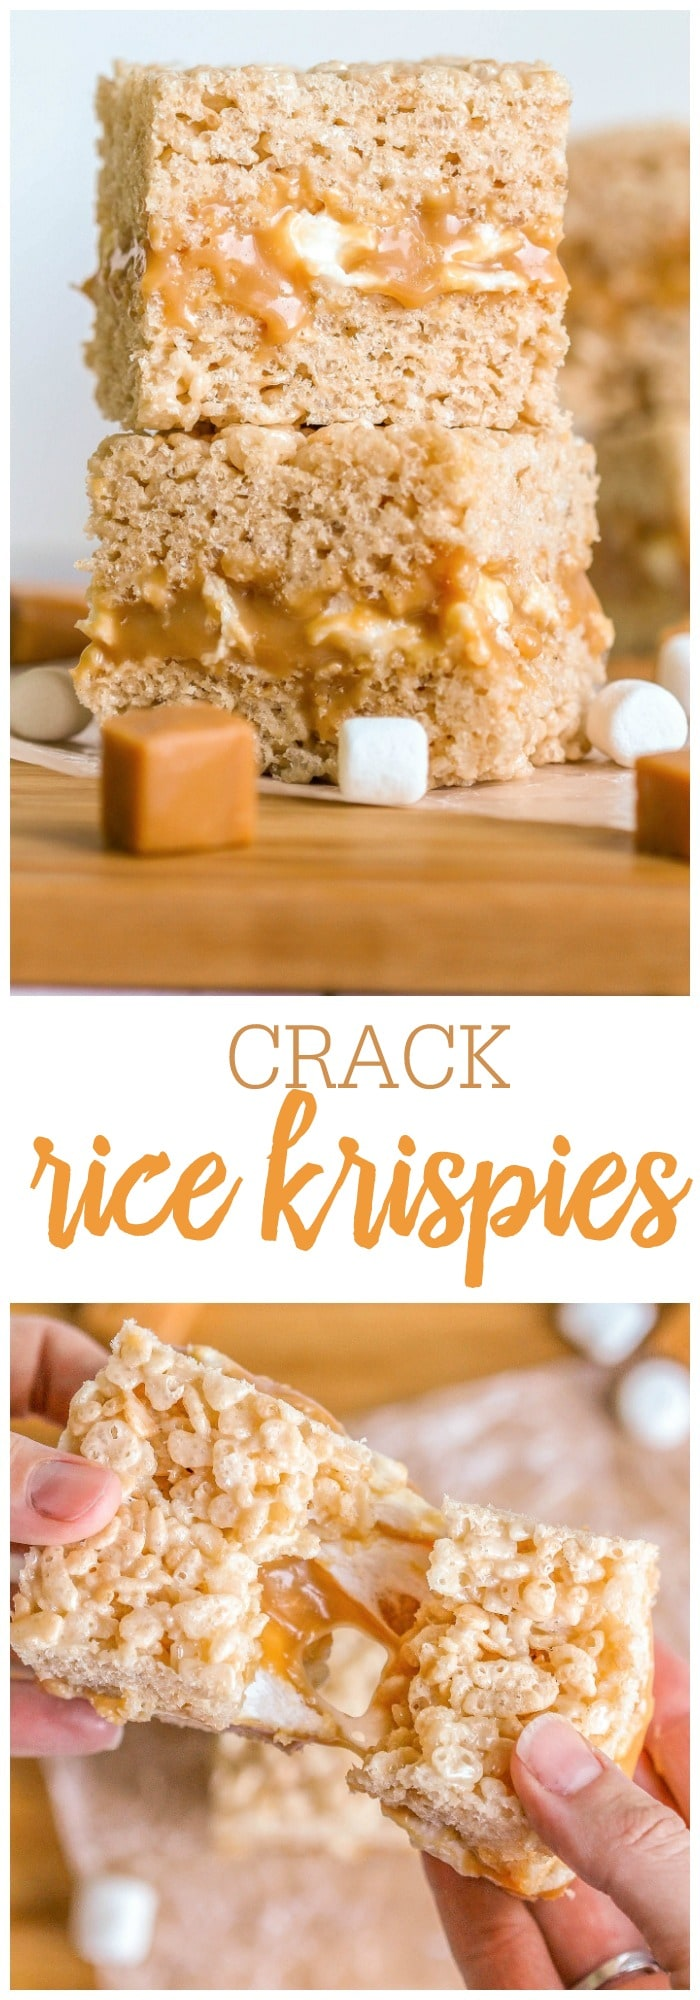 crack-rice-krispies-collage-final